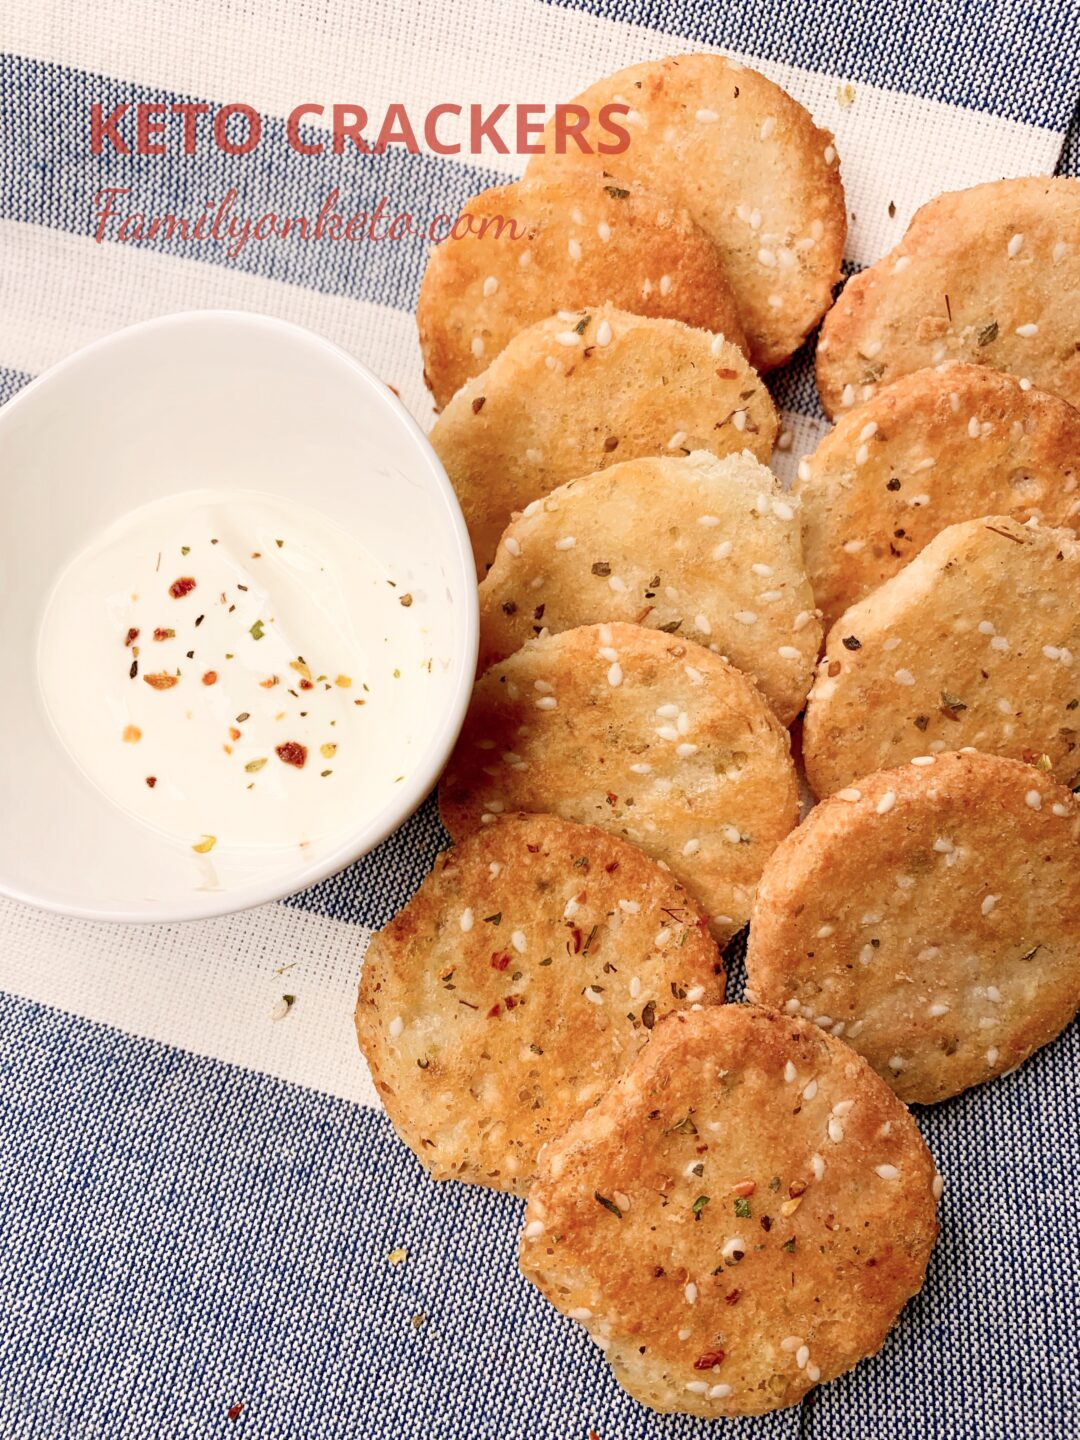 Picture of keto crackers without eggs on the table with low carb sour cream dip